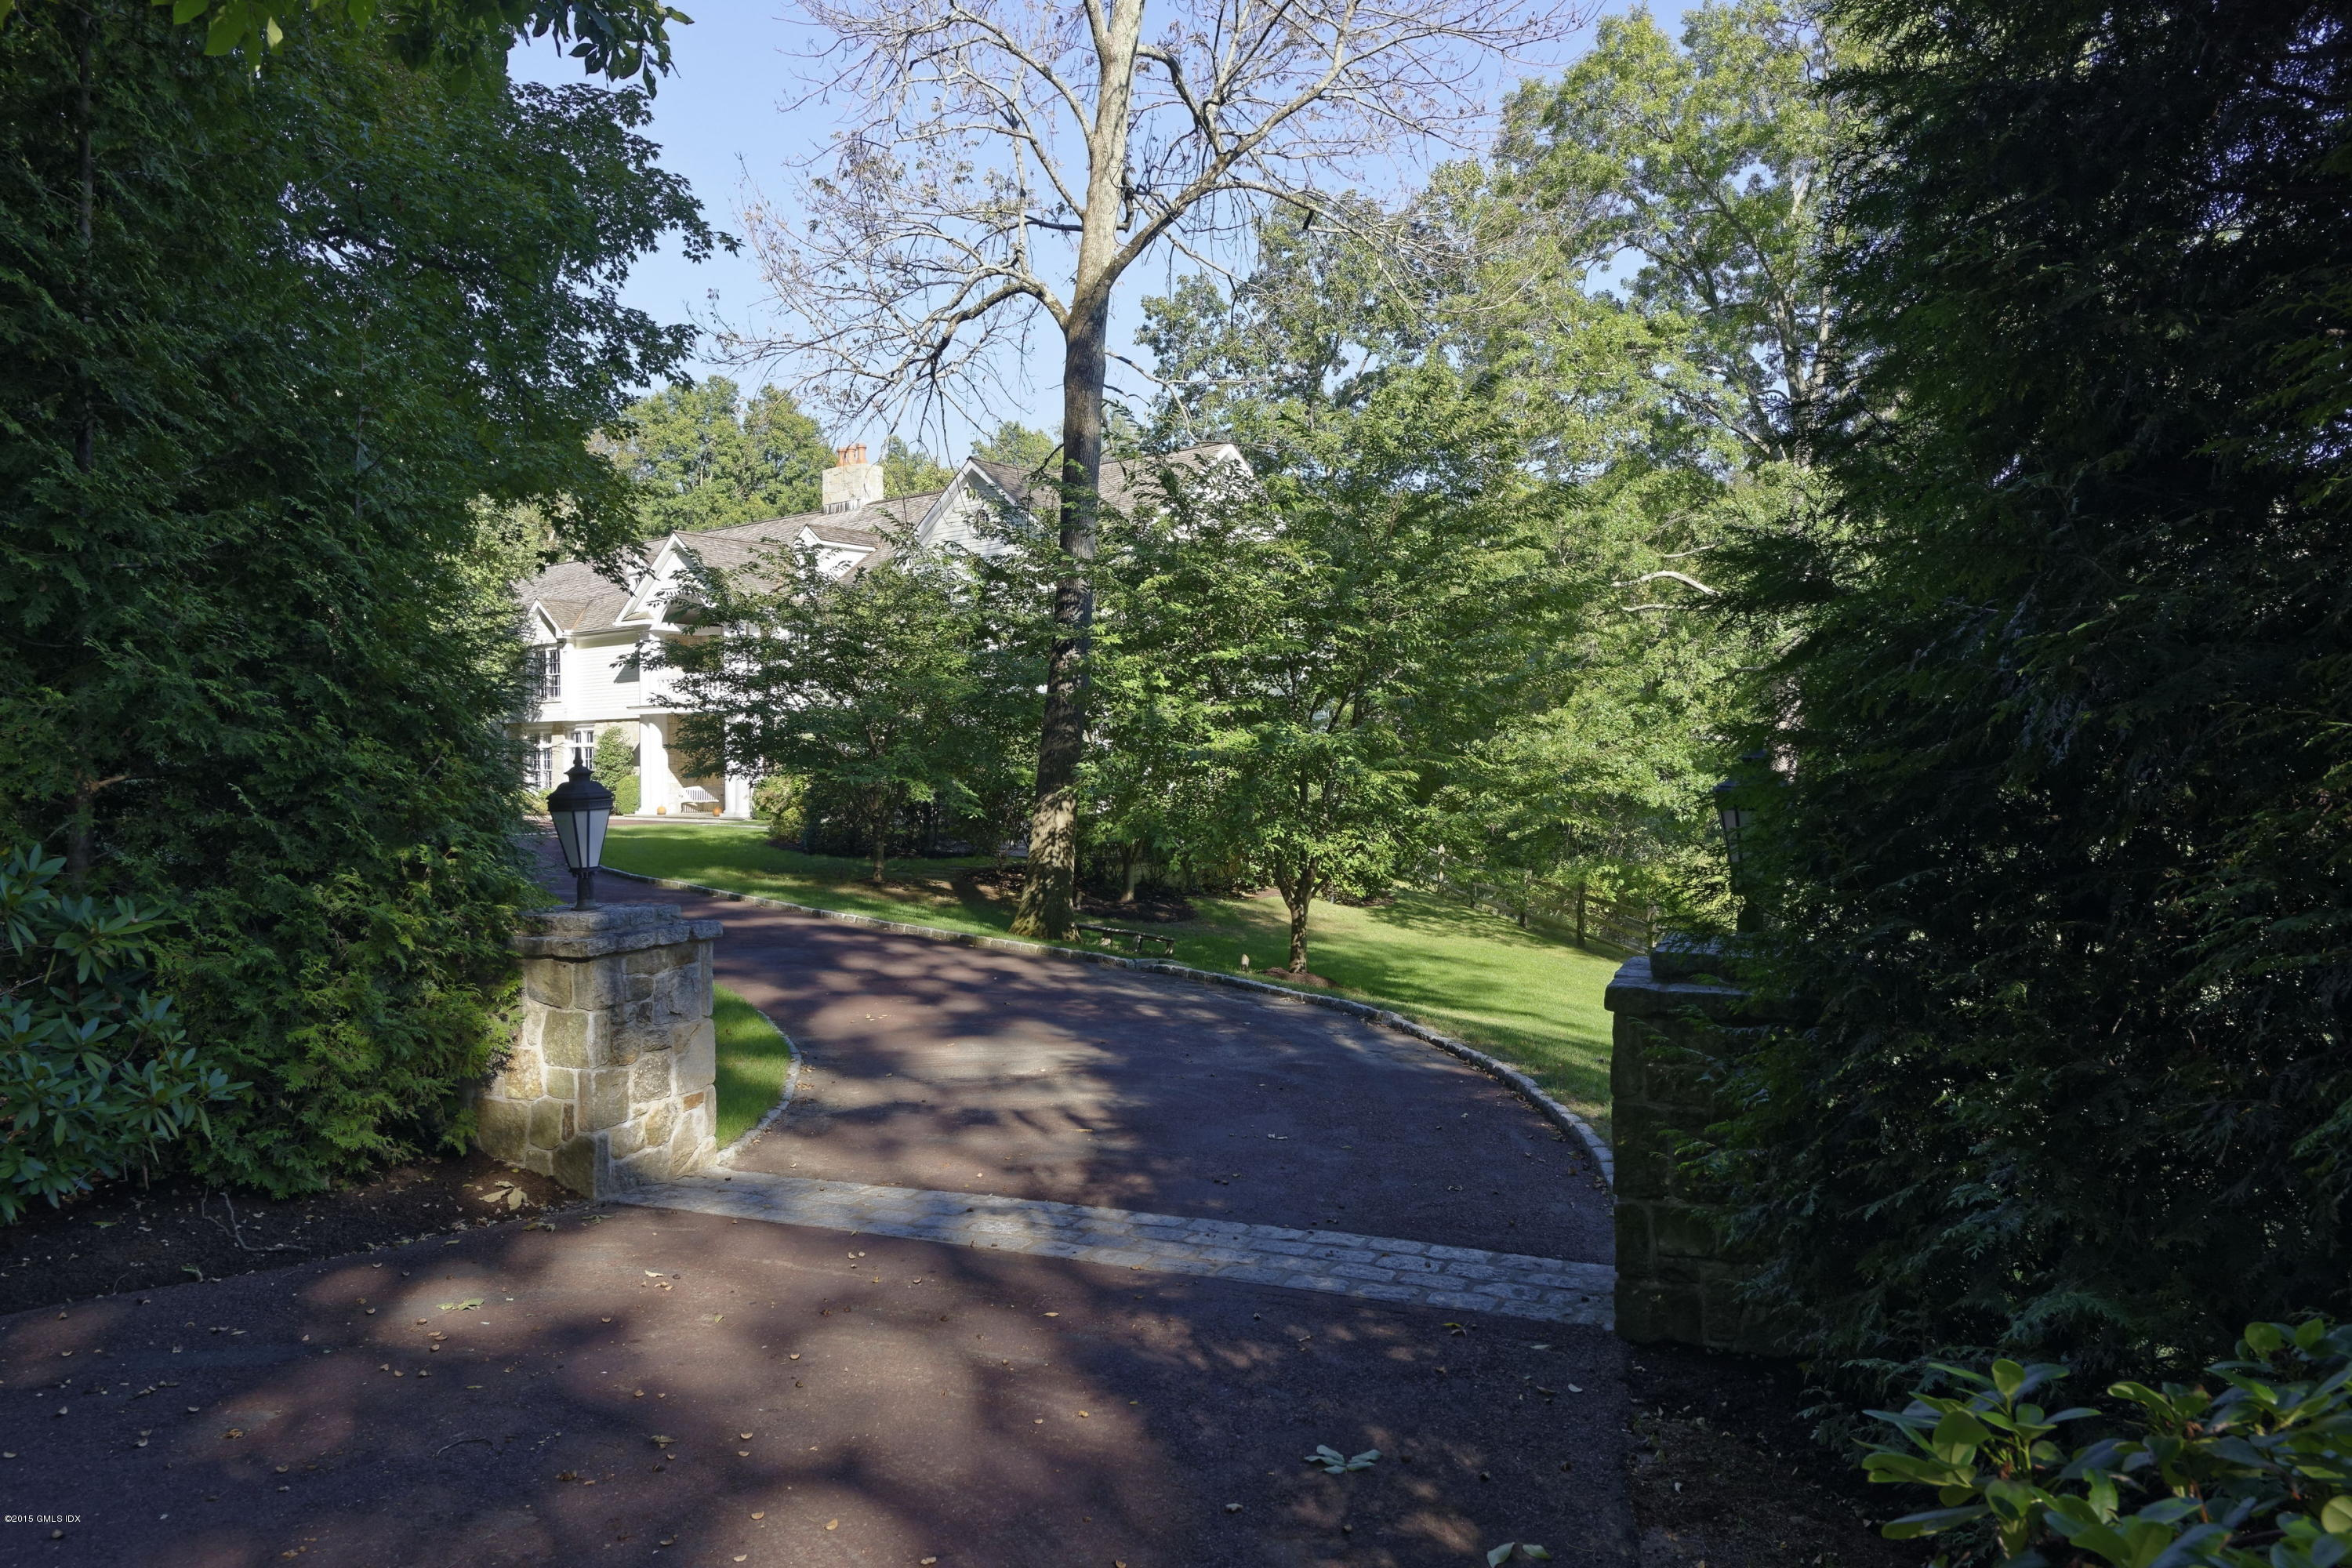 1 Butternut Hollow Road,Greenwich,Connecticut 06830,7 Bedrooms Bedrooms,8 BathroomsBathrooms,Single family,Butternut Hollow,105052